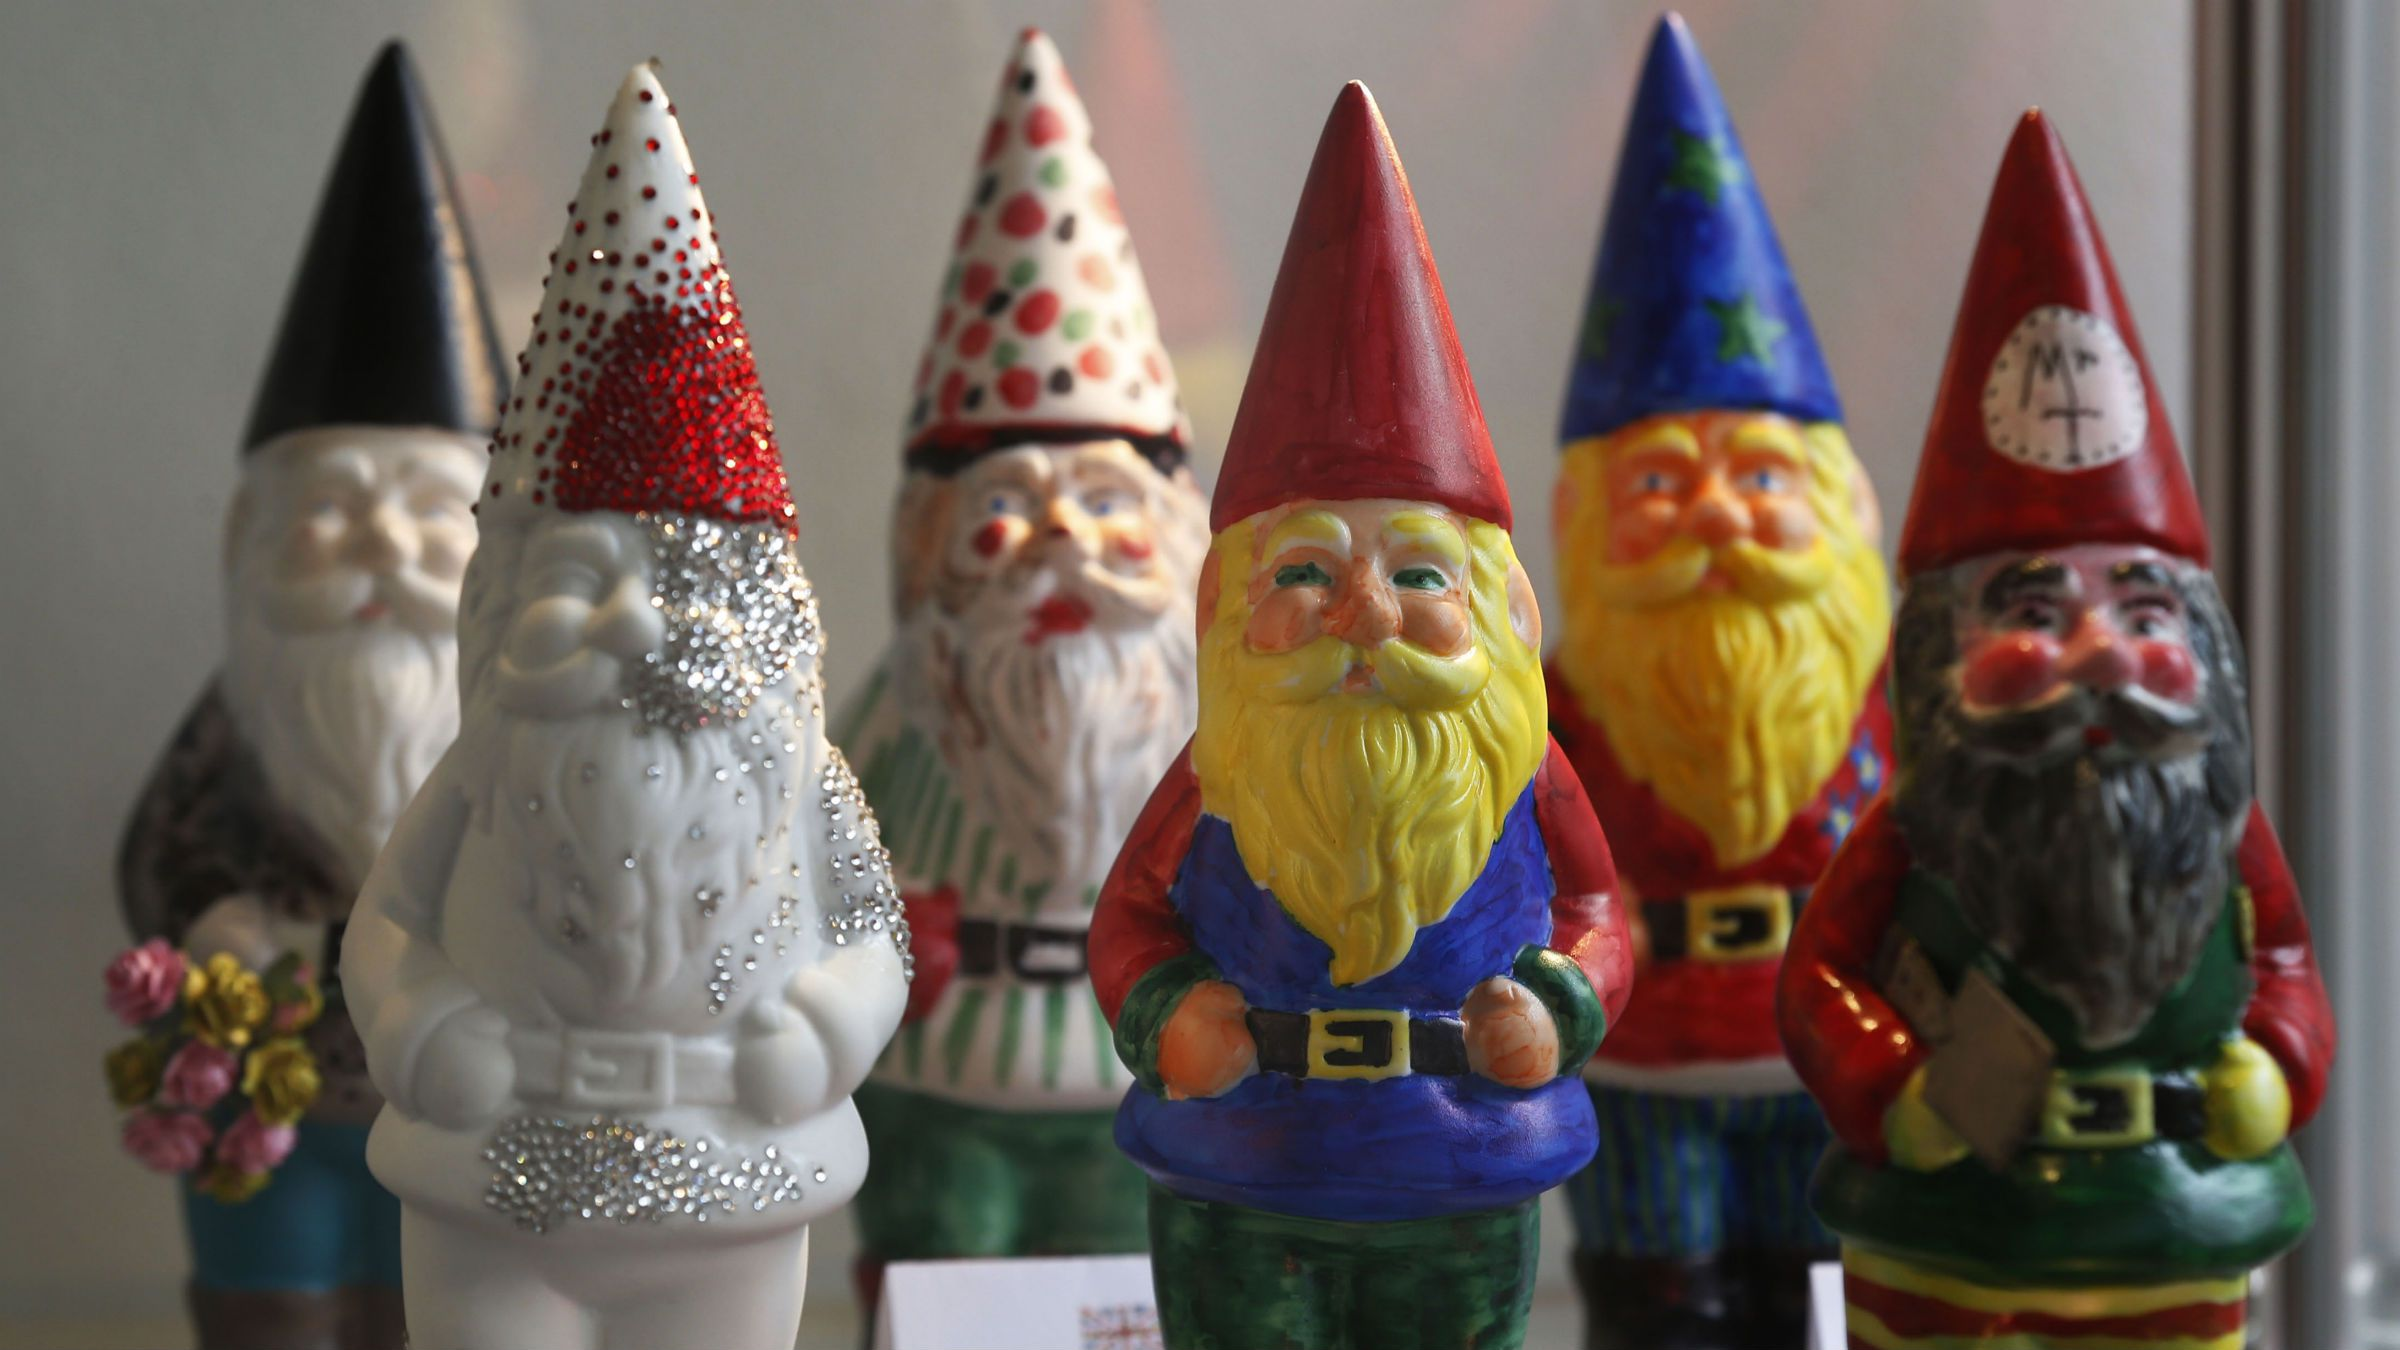 Garden gnomes painted by celebrities are seen on display during the Chelsea Flower Show in London, Monday, May 20, 2013. Chelsea Flower Show celebrates its centenary anniversary this year, has temporarily lifted its 100-year ban on garden gnomes, and marks it anniversary by unveiling over 100 gnomes painted for charity by celebrities and will be auctioned on eBay during the RHS Chelsea Flower Show. (AP Photo/Sang Tan)